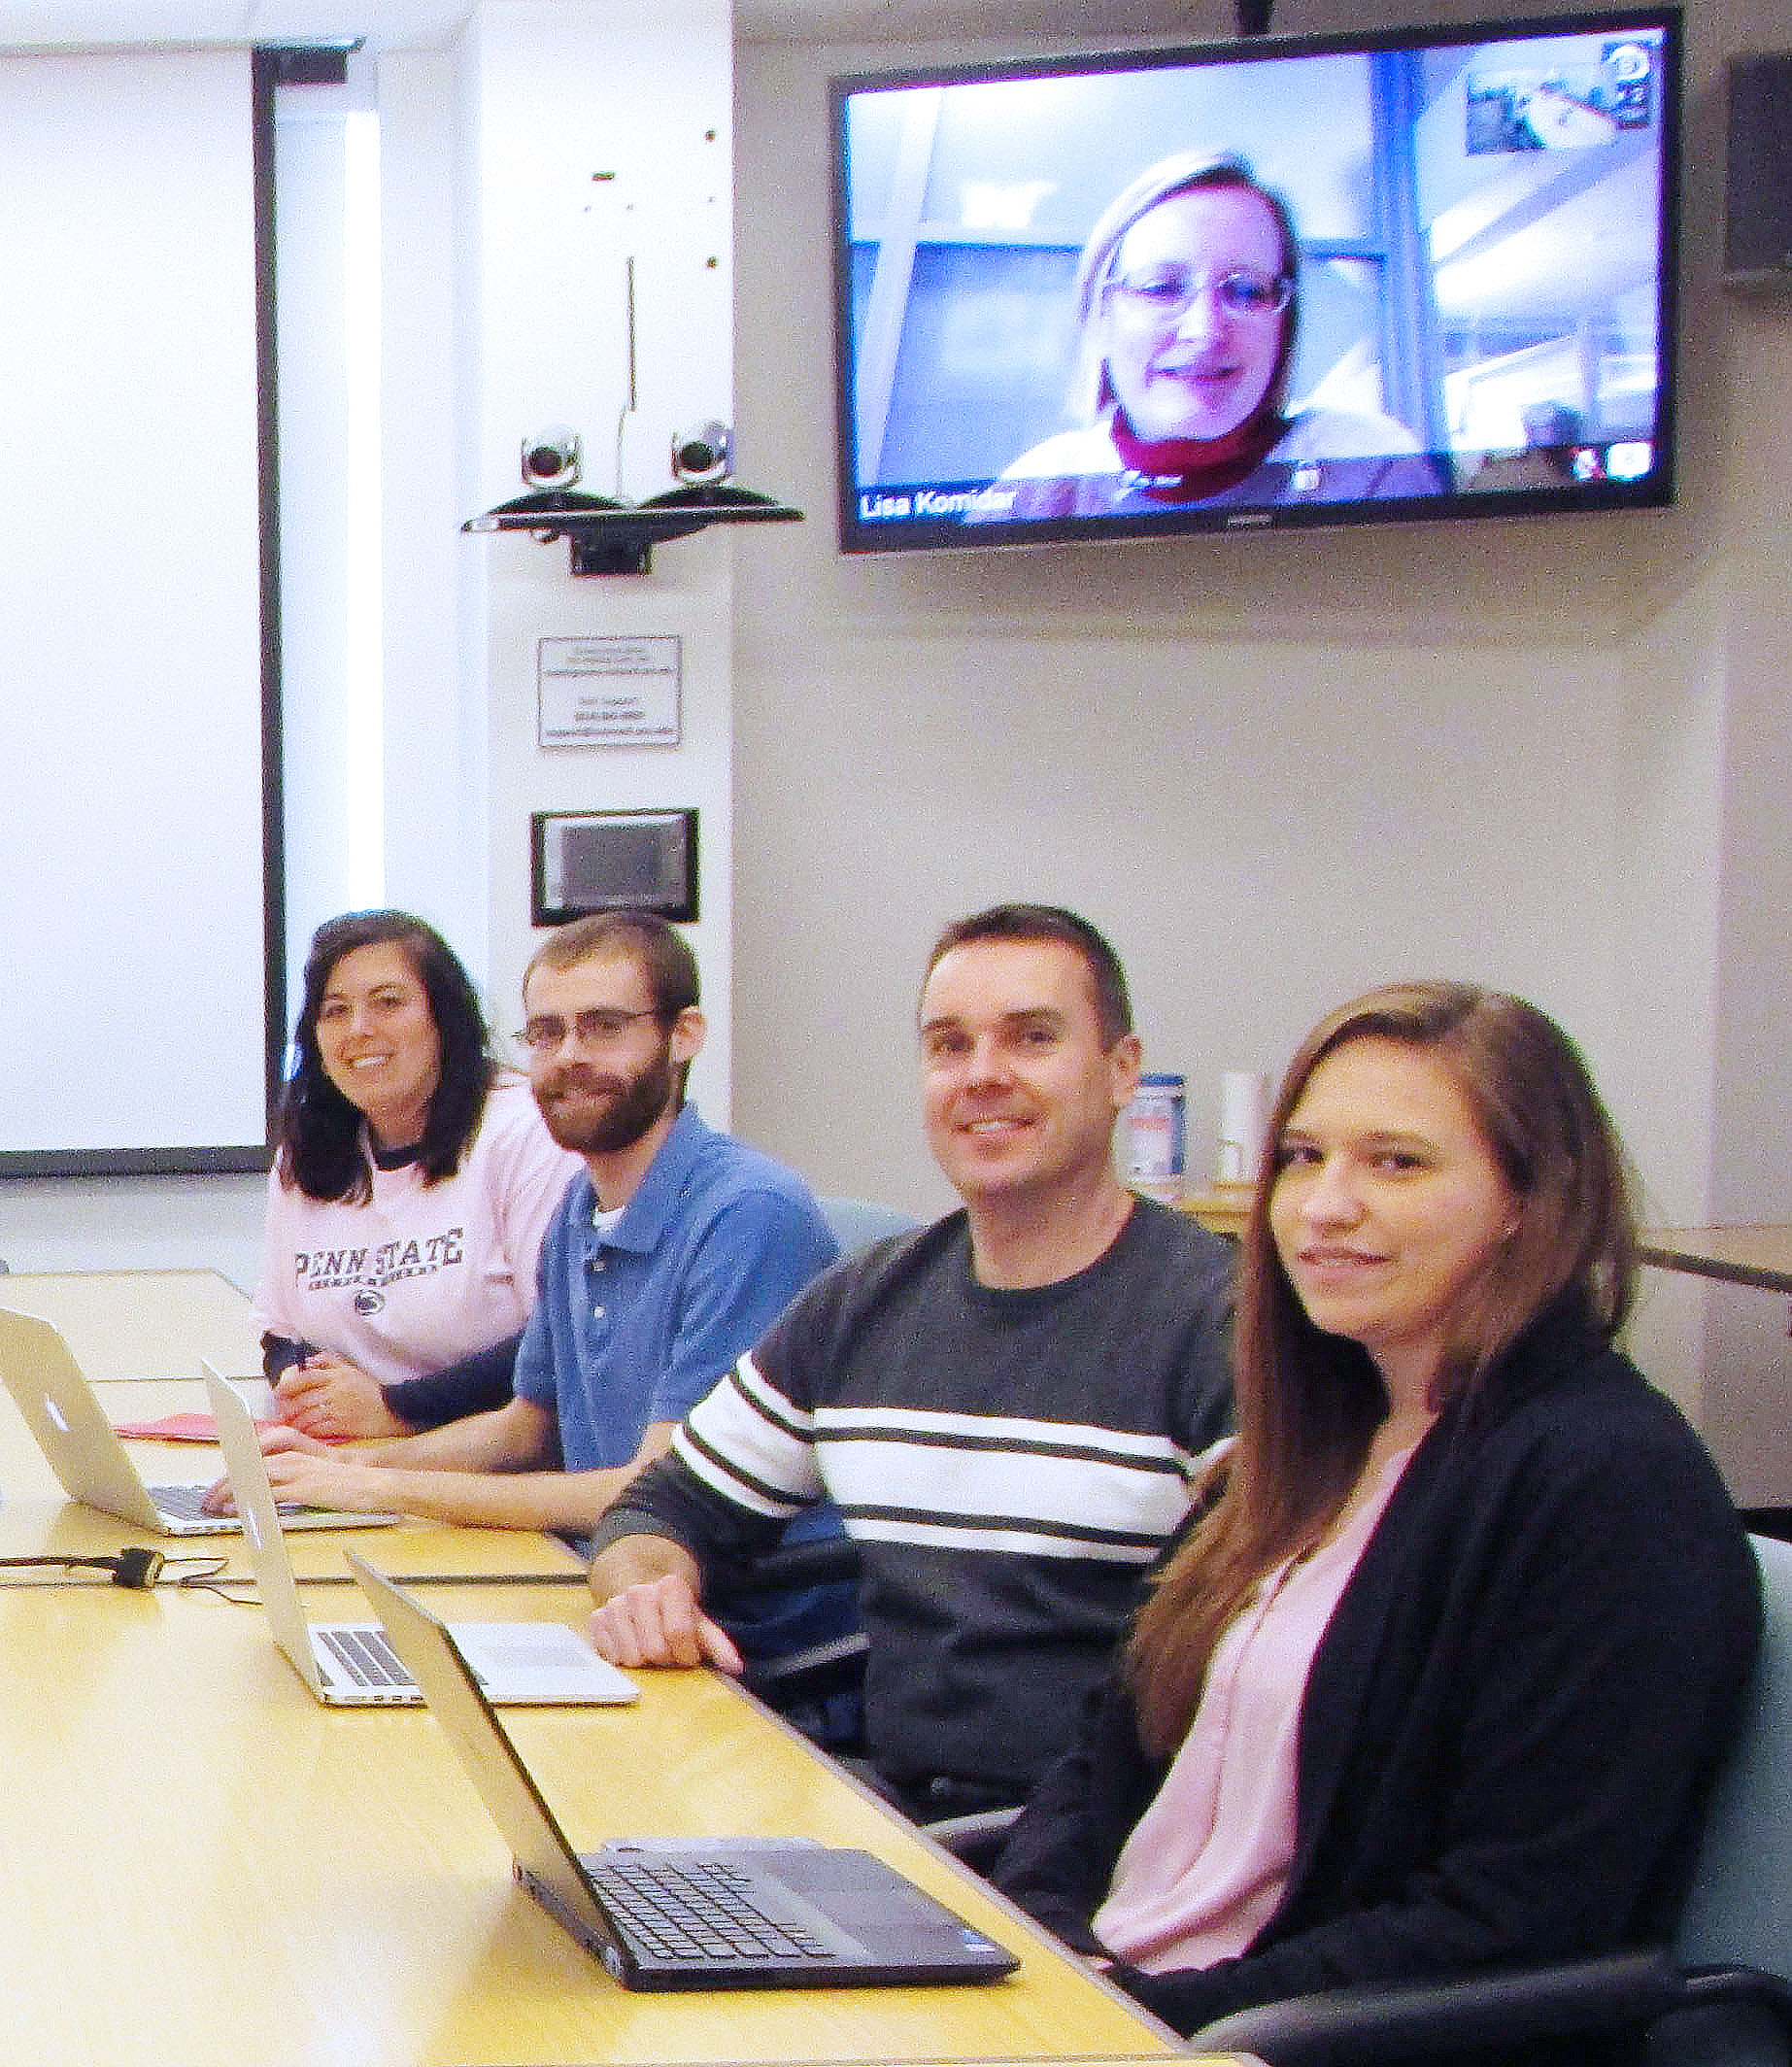 Photo of members of the Outreach conversion team, including Dawn Coder, John Butler, Linas Mockus and Ashlyn Brickley seated at a table, with Lisa Komidar on the screen behind them.